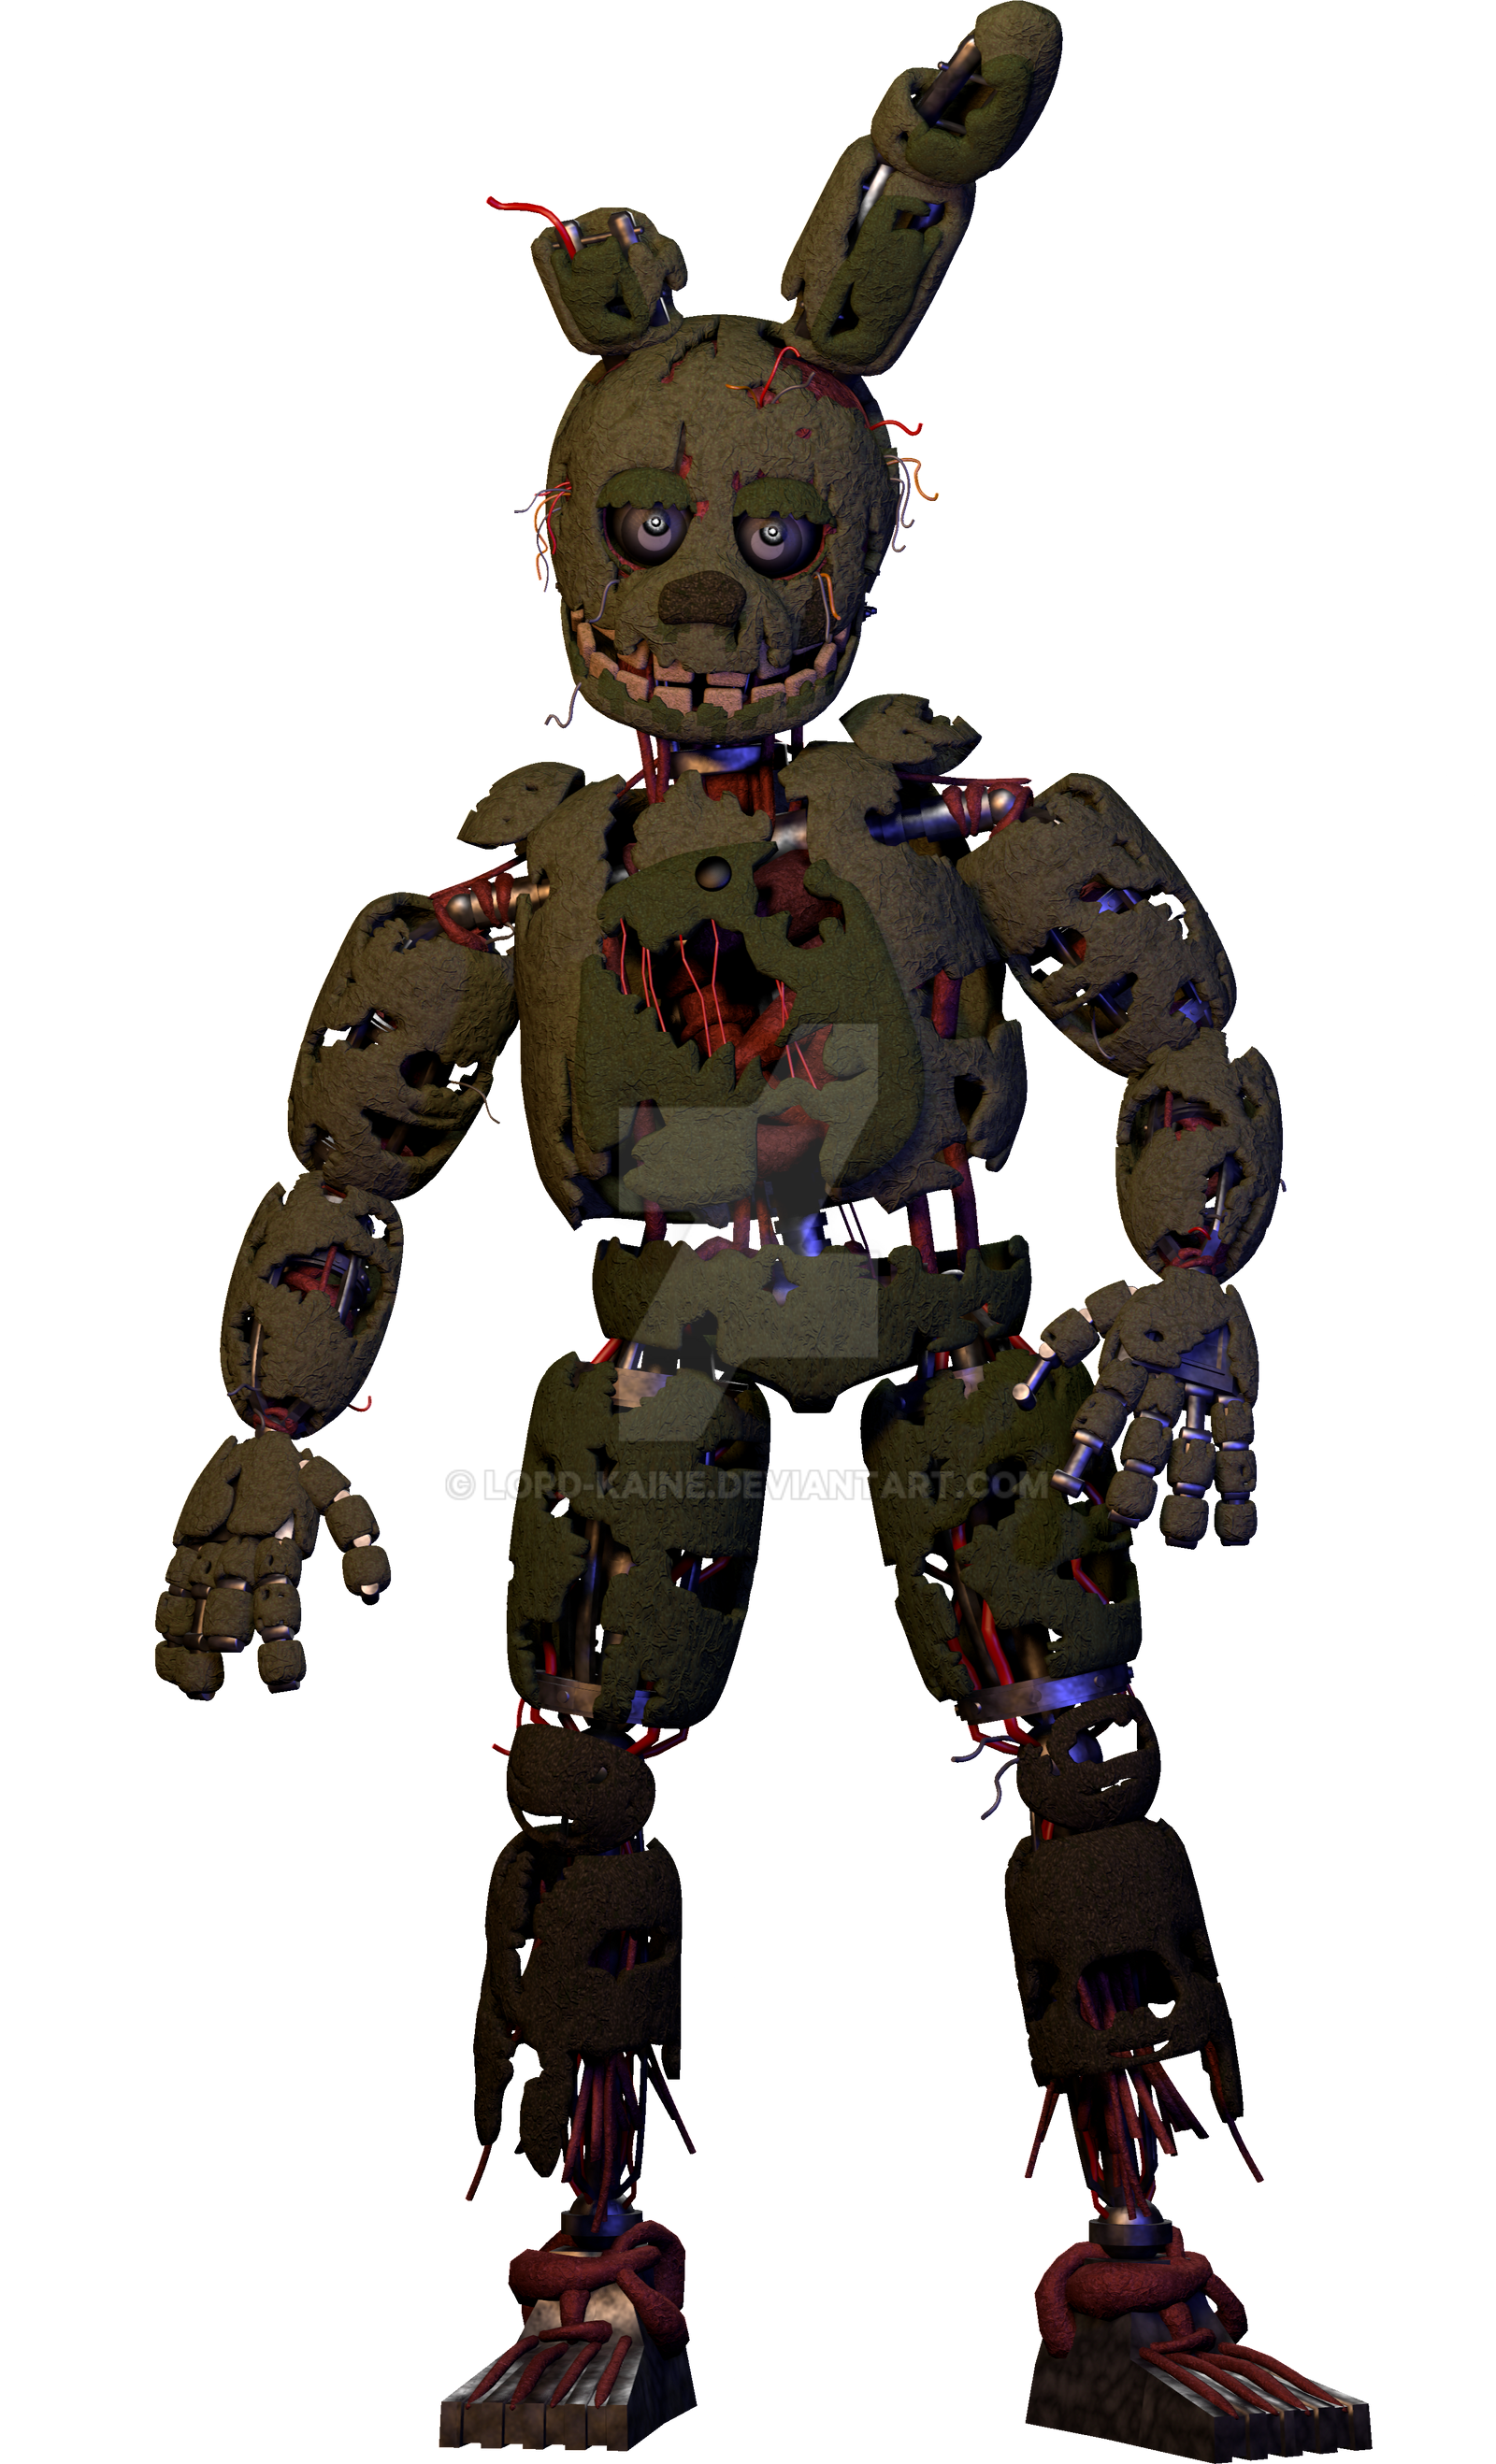 Springtrap by Lord-Kaine on DeviantArt